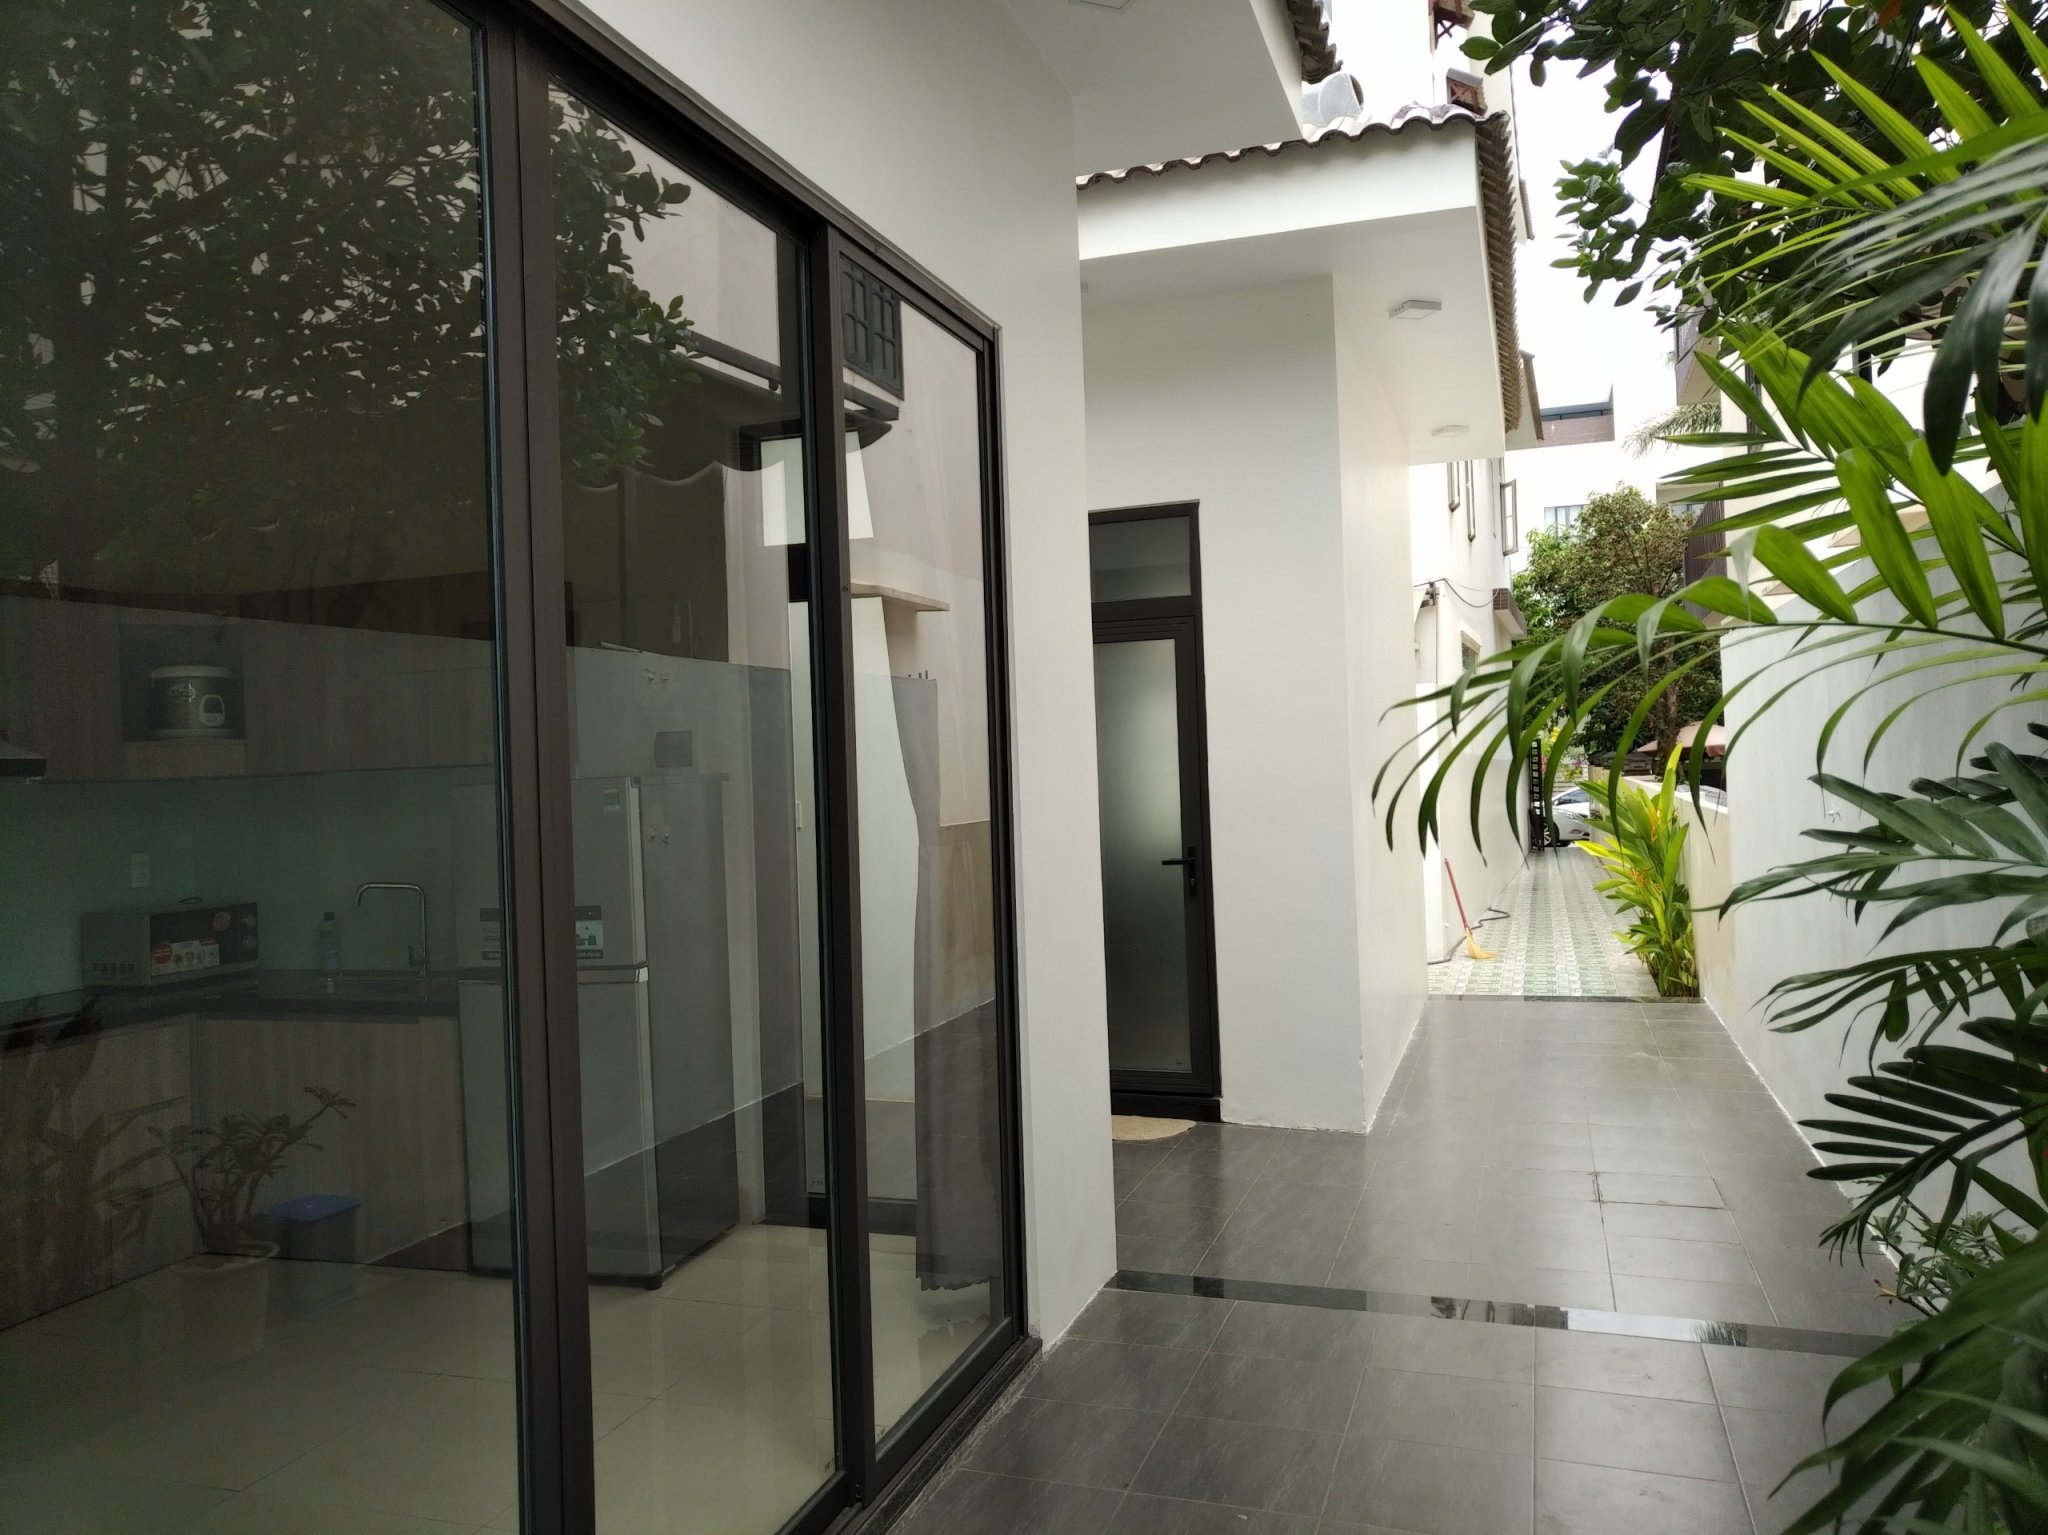 SPACIOUS 2 BEDROOM HOUSE FOR RENT IN THE NICEST AREA OF NGU HANH SON  NHS.H.B0074